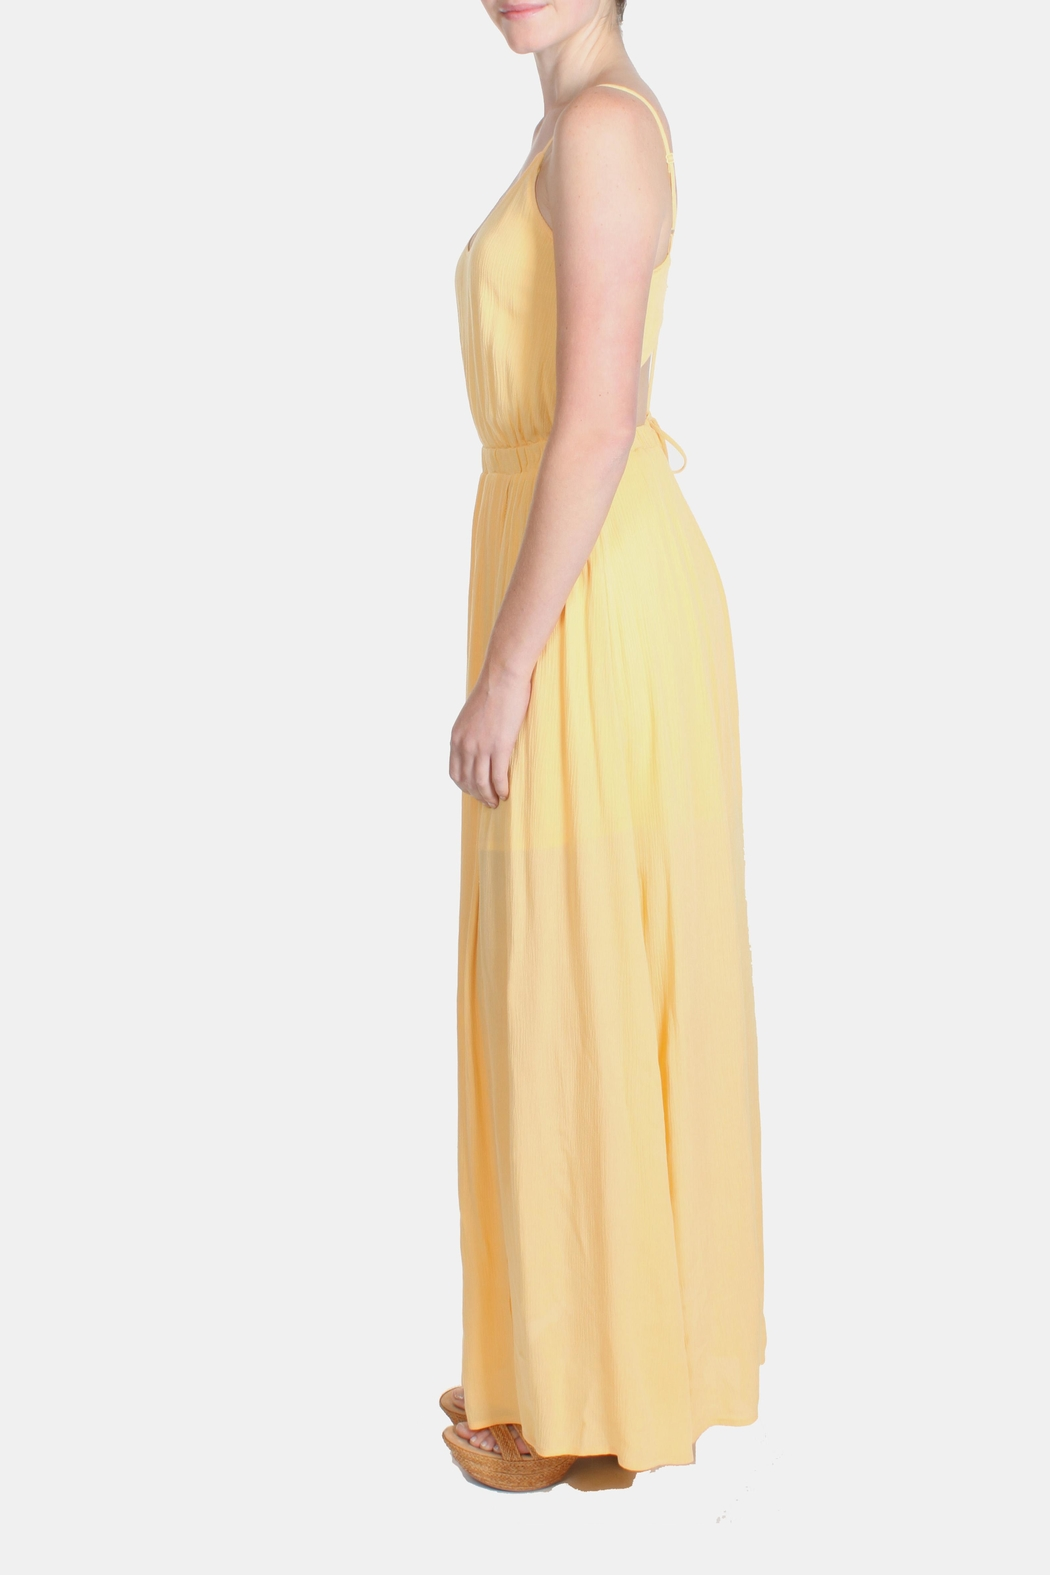 rokoko Yellow Corset Dress - Back Cropped Image